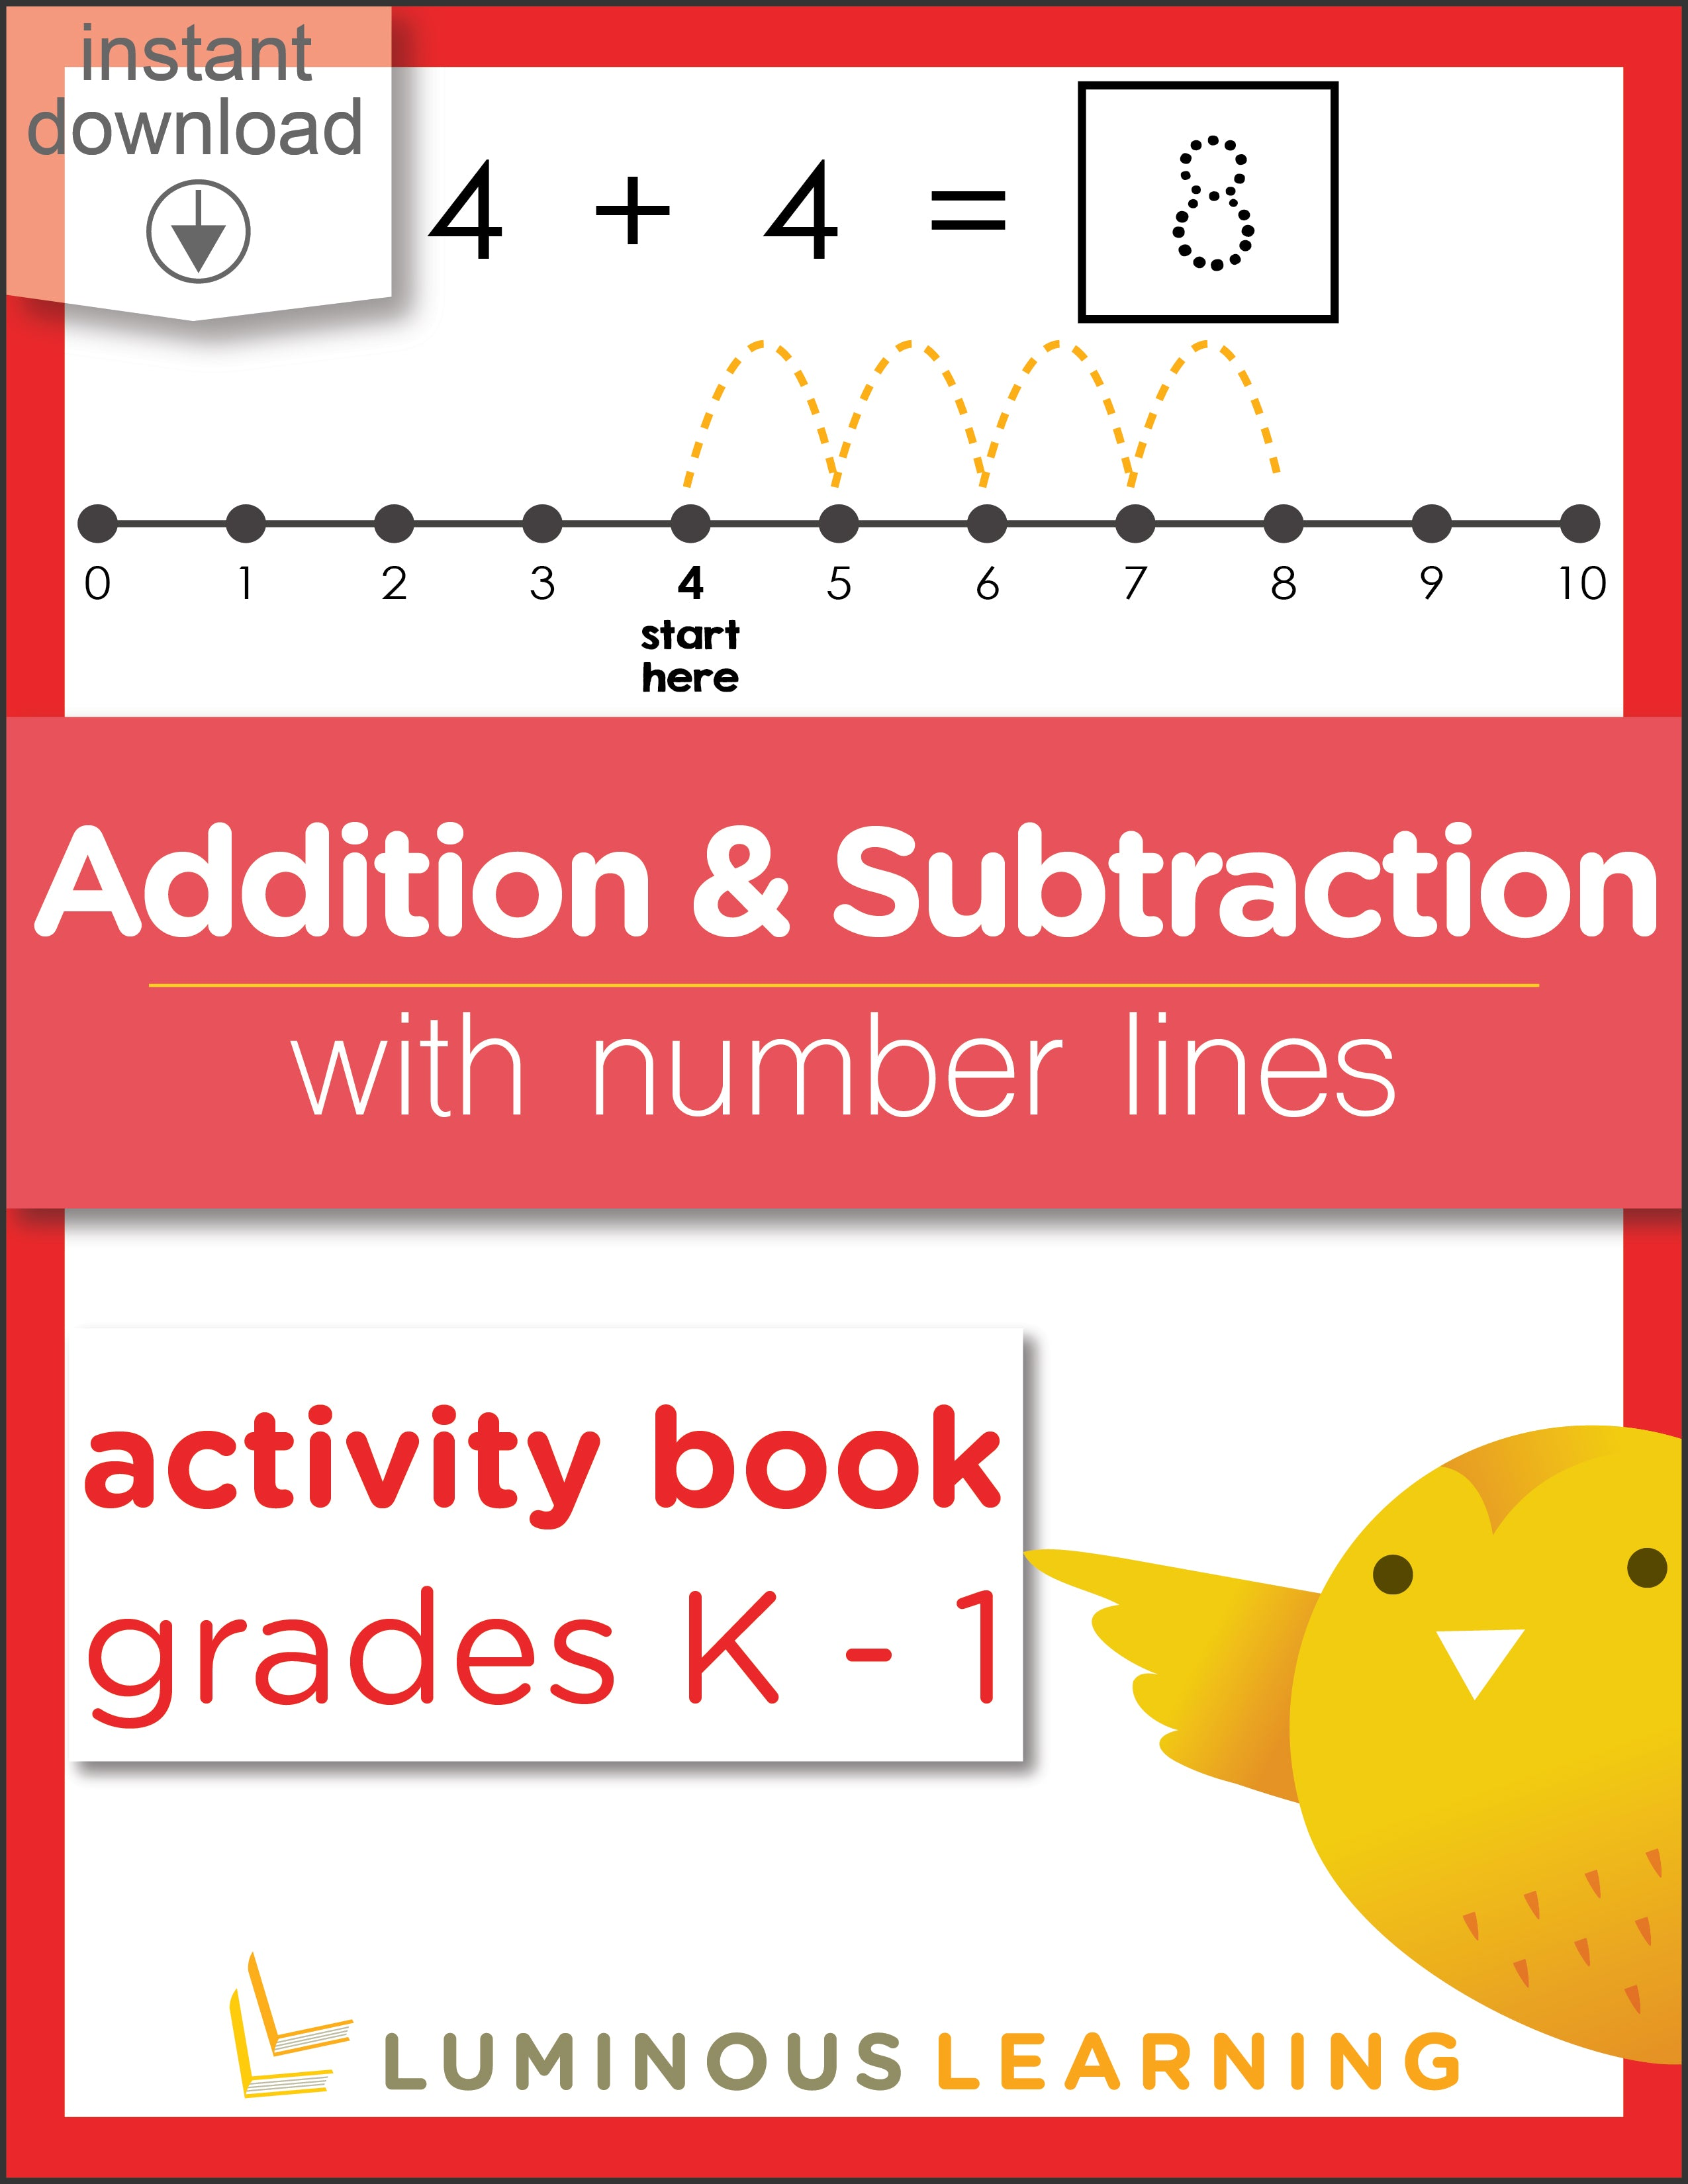 photo about Number Line Printable named Grades K - 1 Addition and Subtraction with Variety Traces: Printable Math Things to do